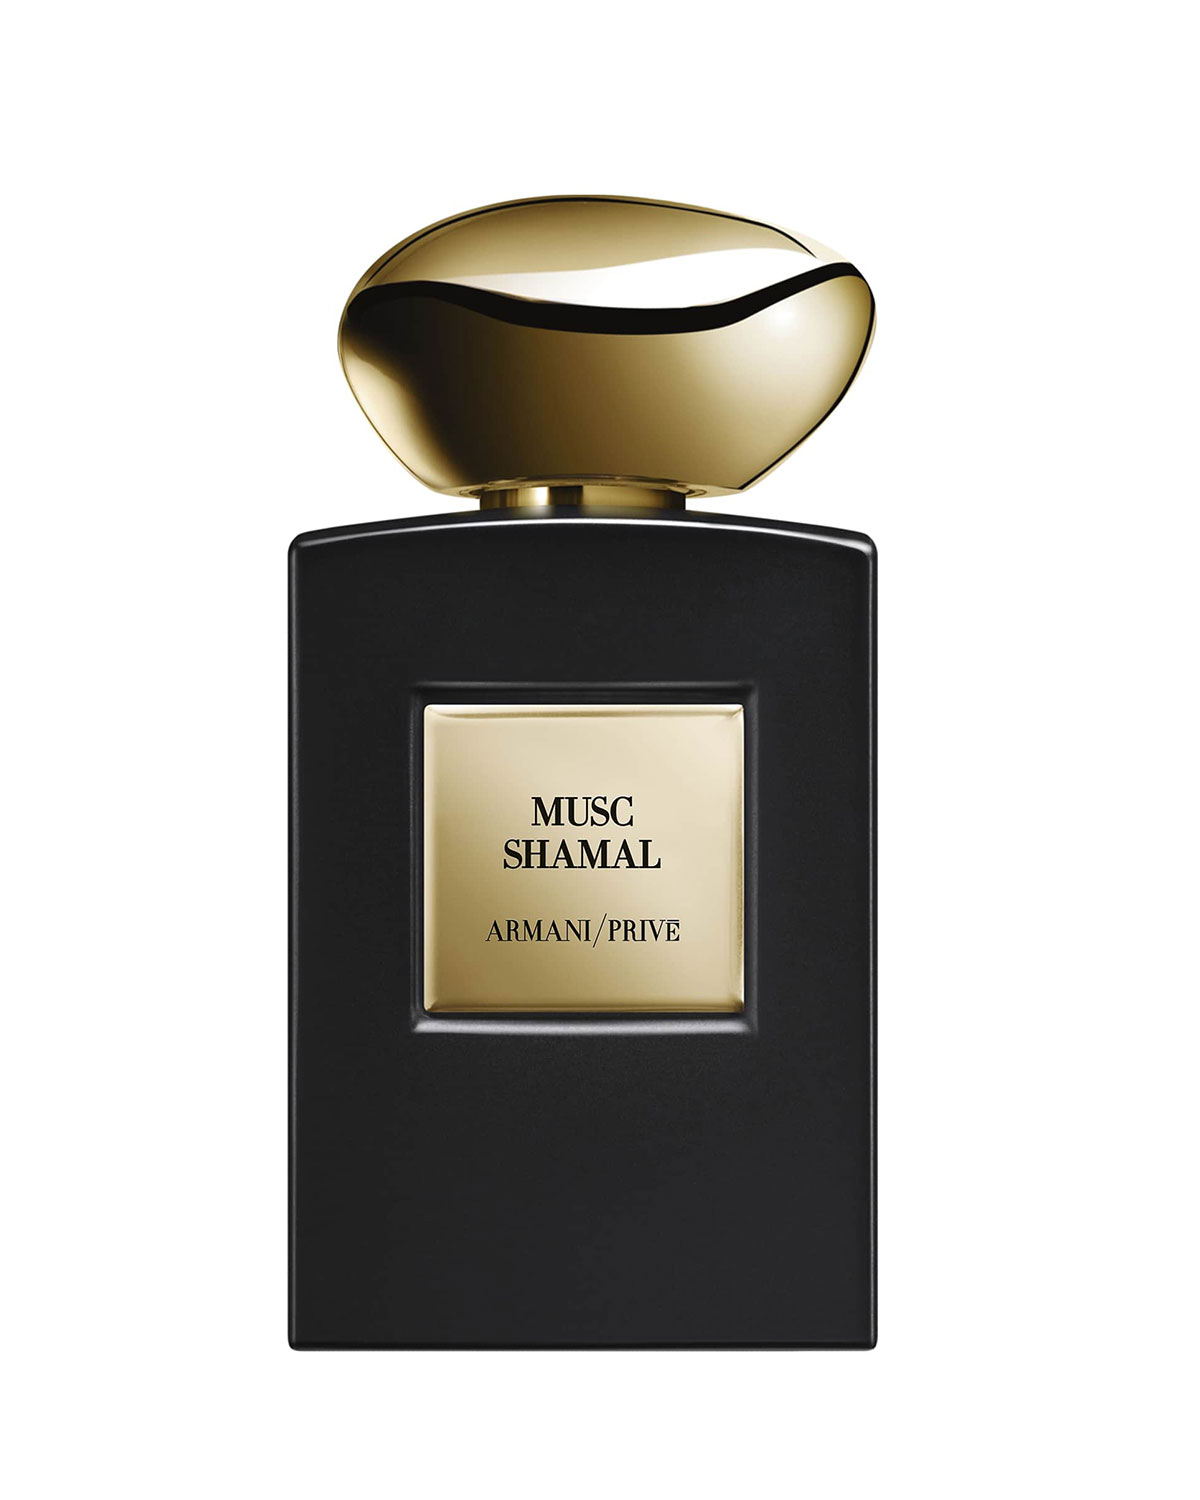 Nm Exclusive Musc Shamal, 3.4 Oz. / 100 M L by Giorgio Armani